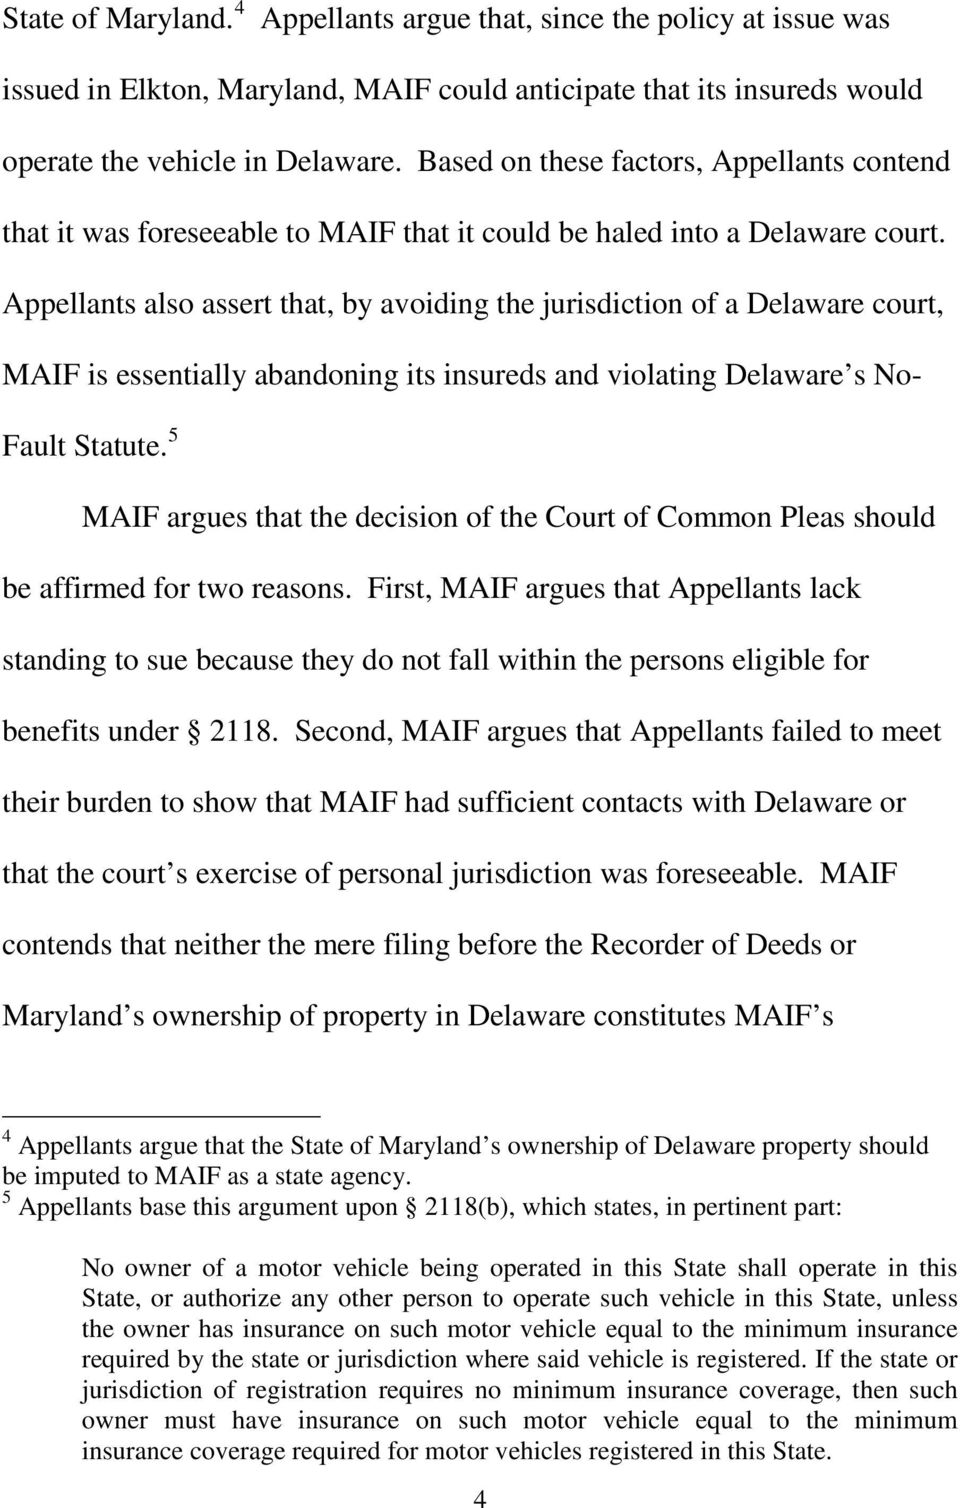 Appellants also assert that, by avoiding the jurisdiction of a Delaware court, MAIF is essentially abandoning its insureds and violating Delaware s No- Fault Statute.